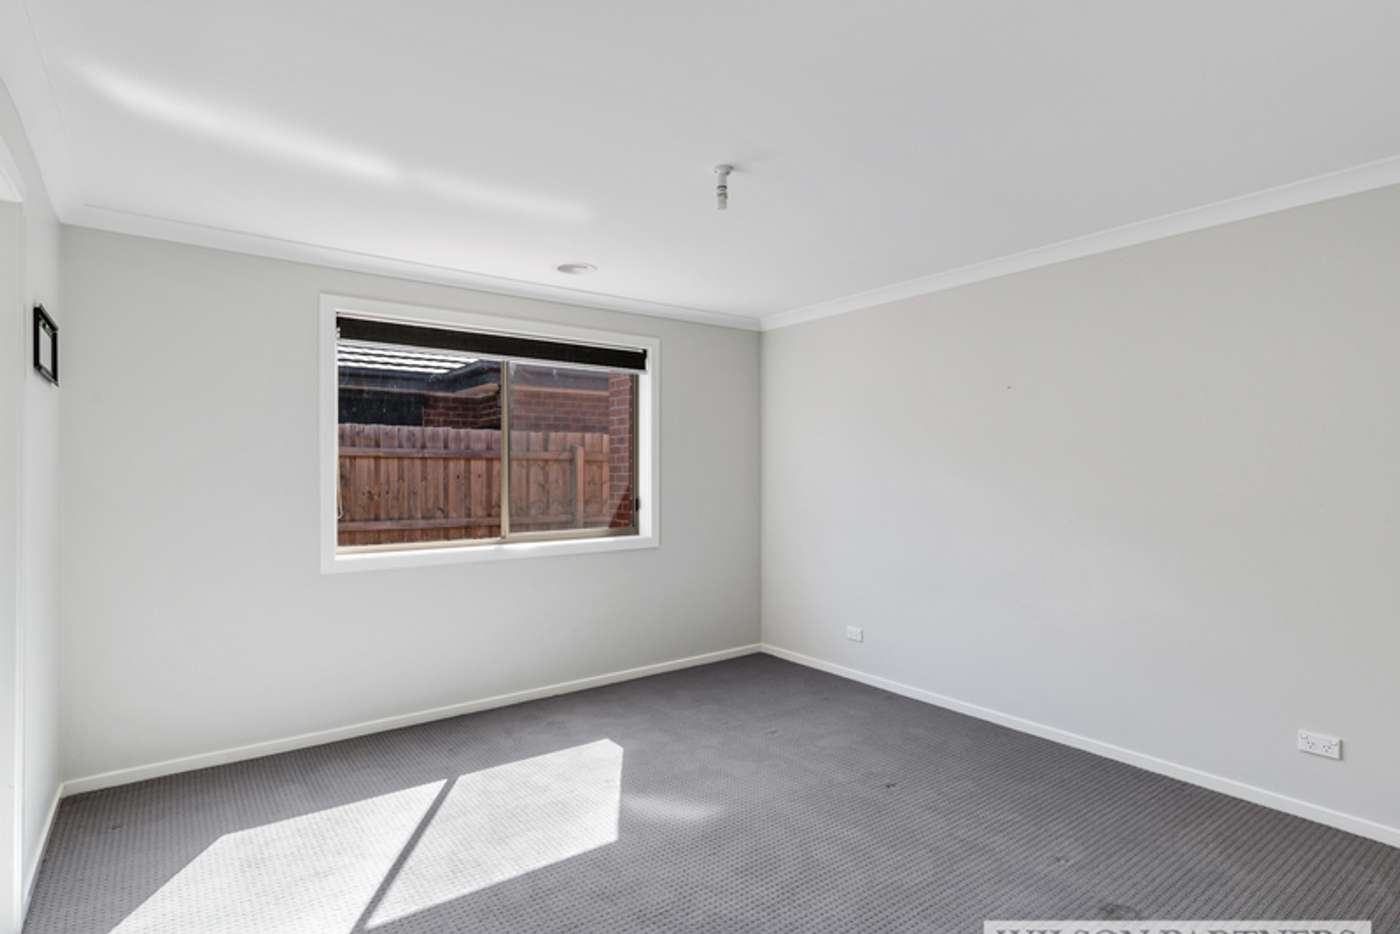 Seventh view of Homely house listing, 4 Casuarina Street, Kilmore VIC 3764